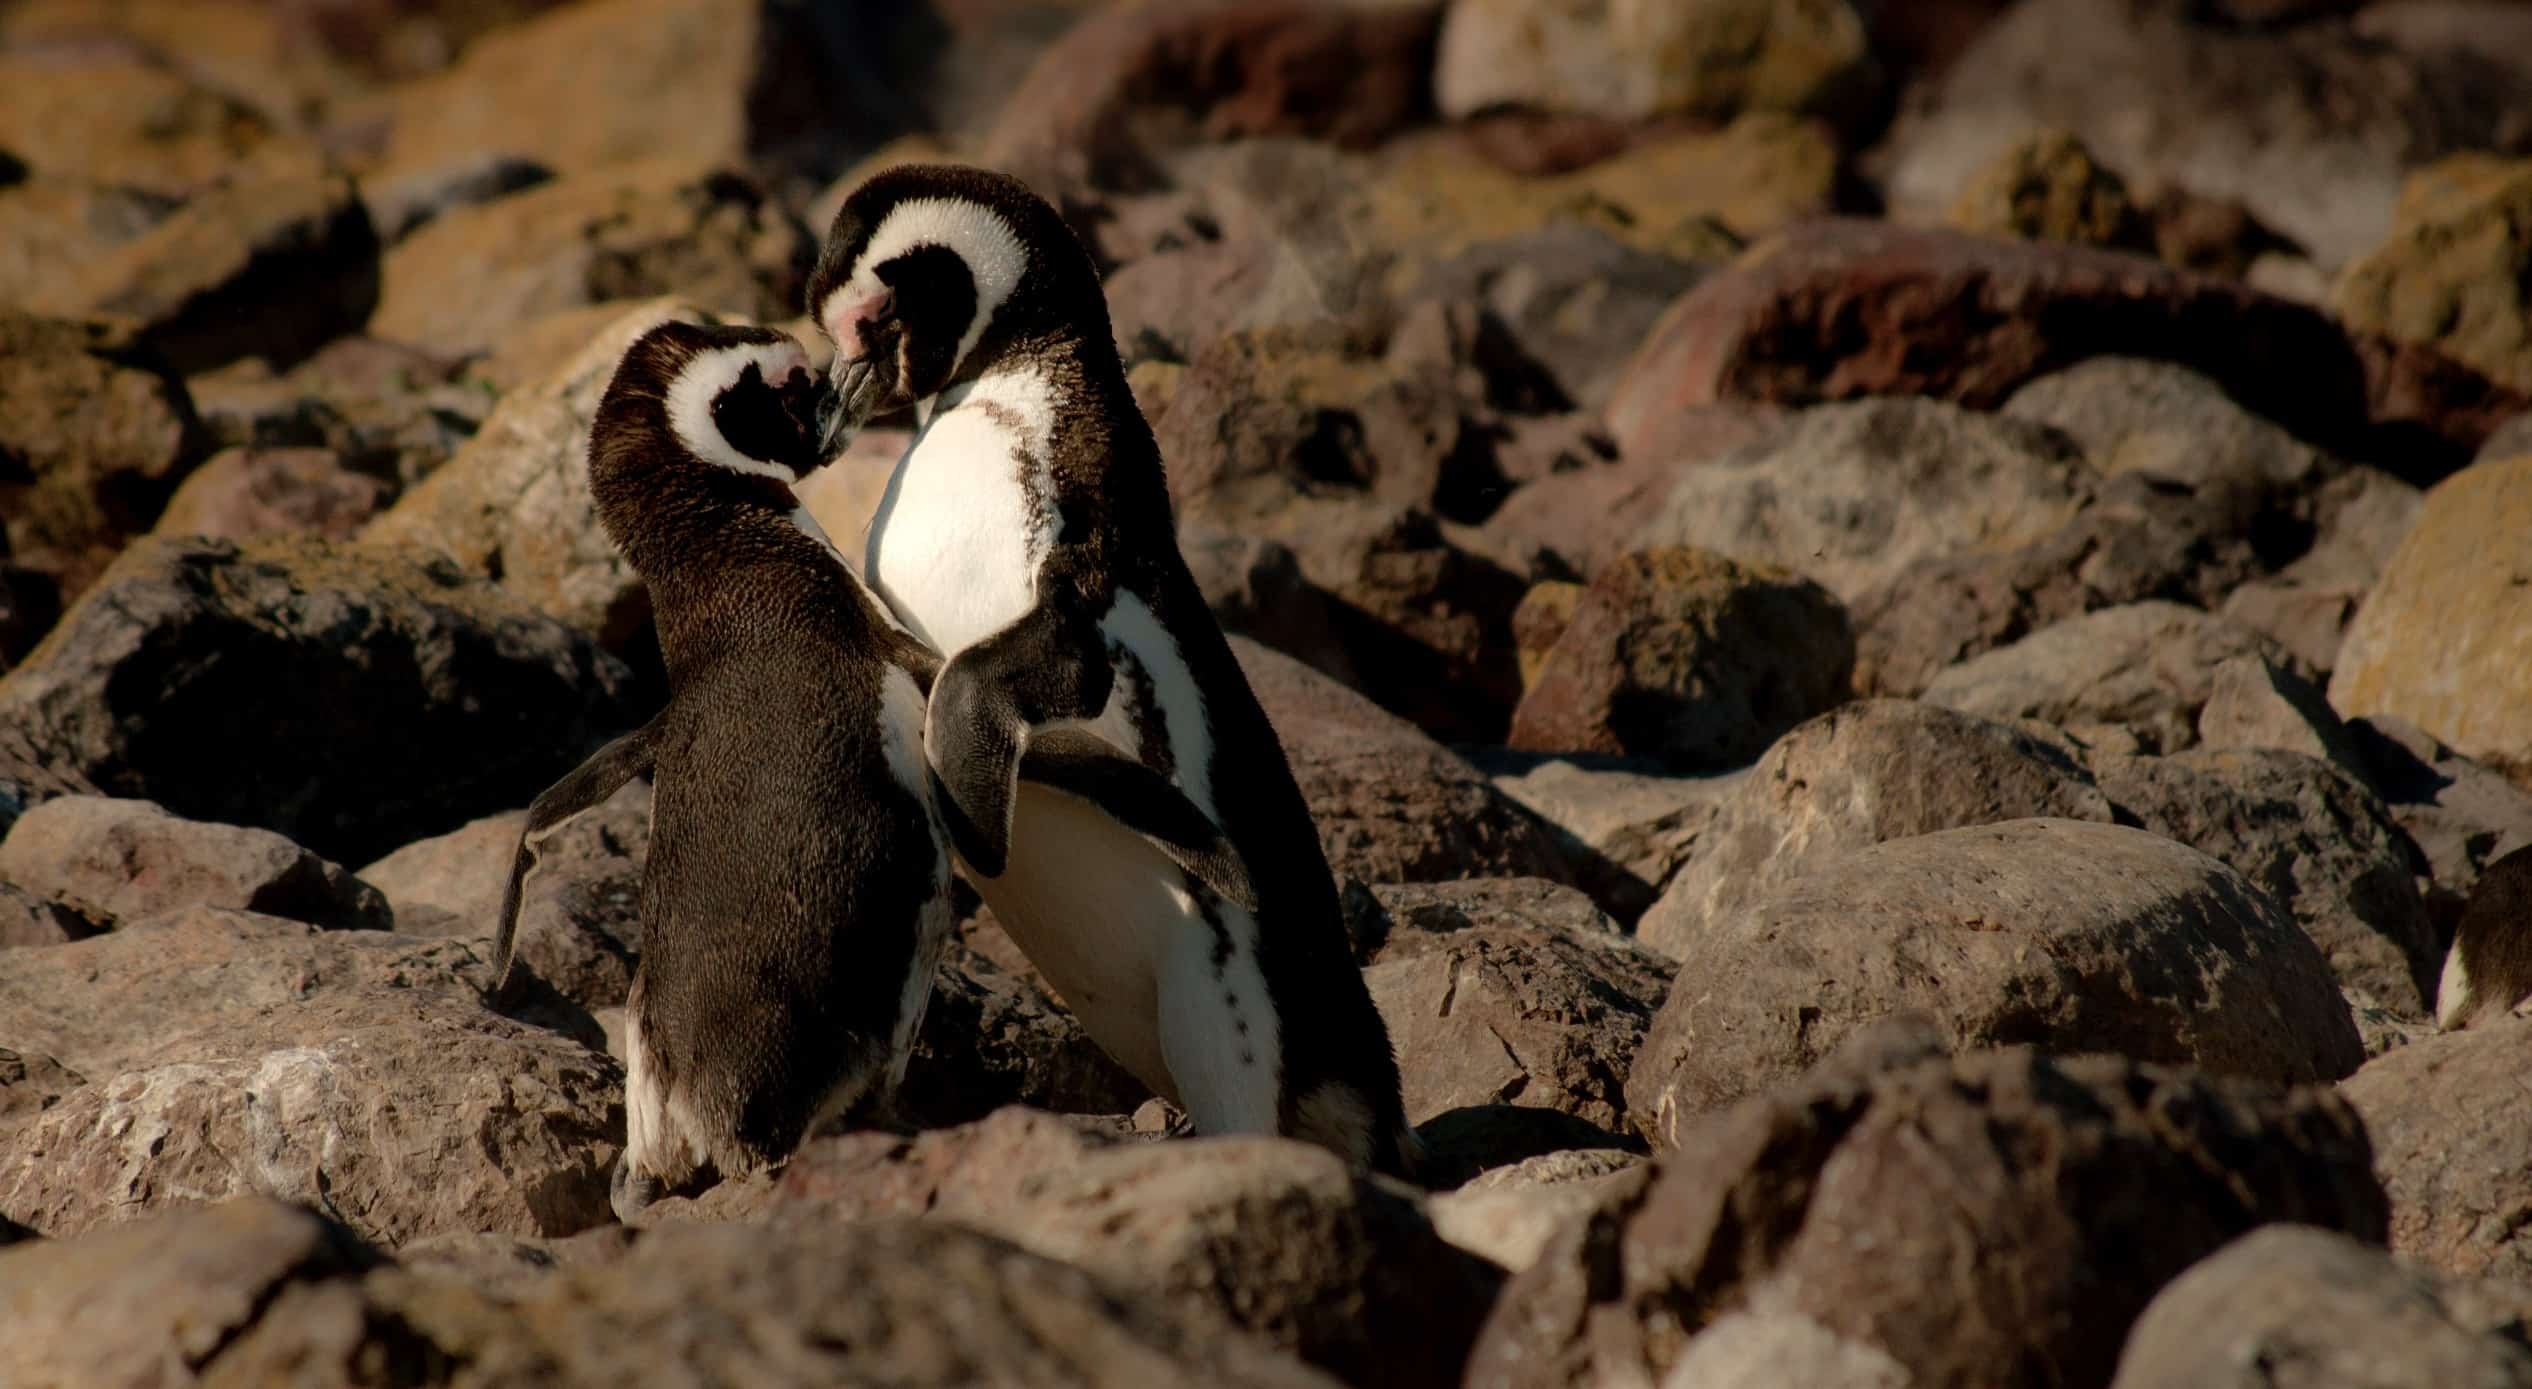 gay animals, homosexual animals, penguins